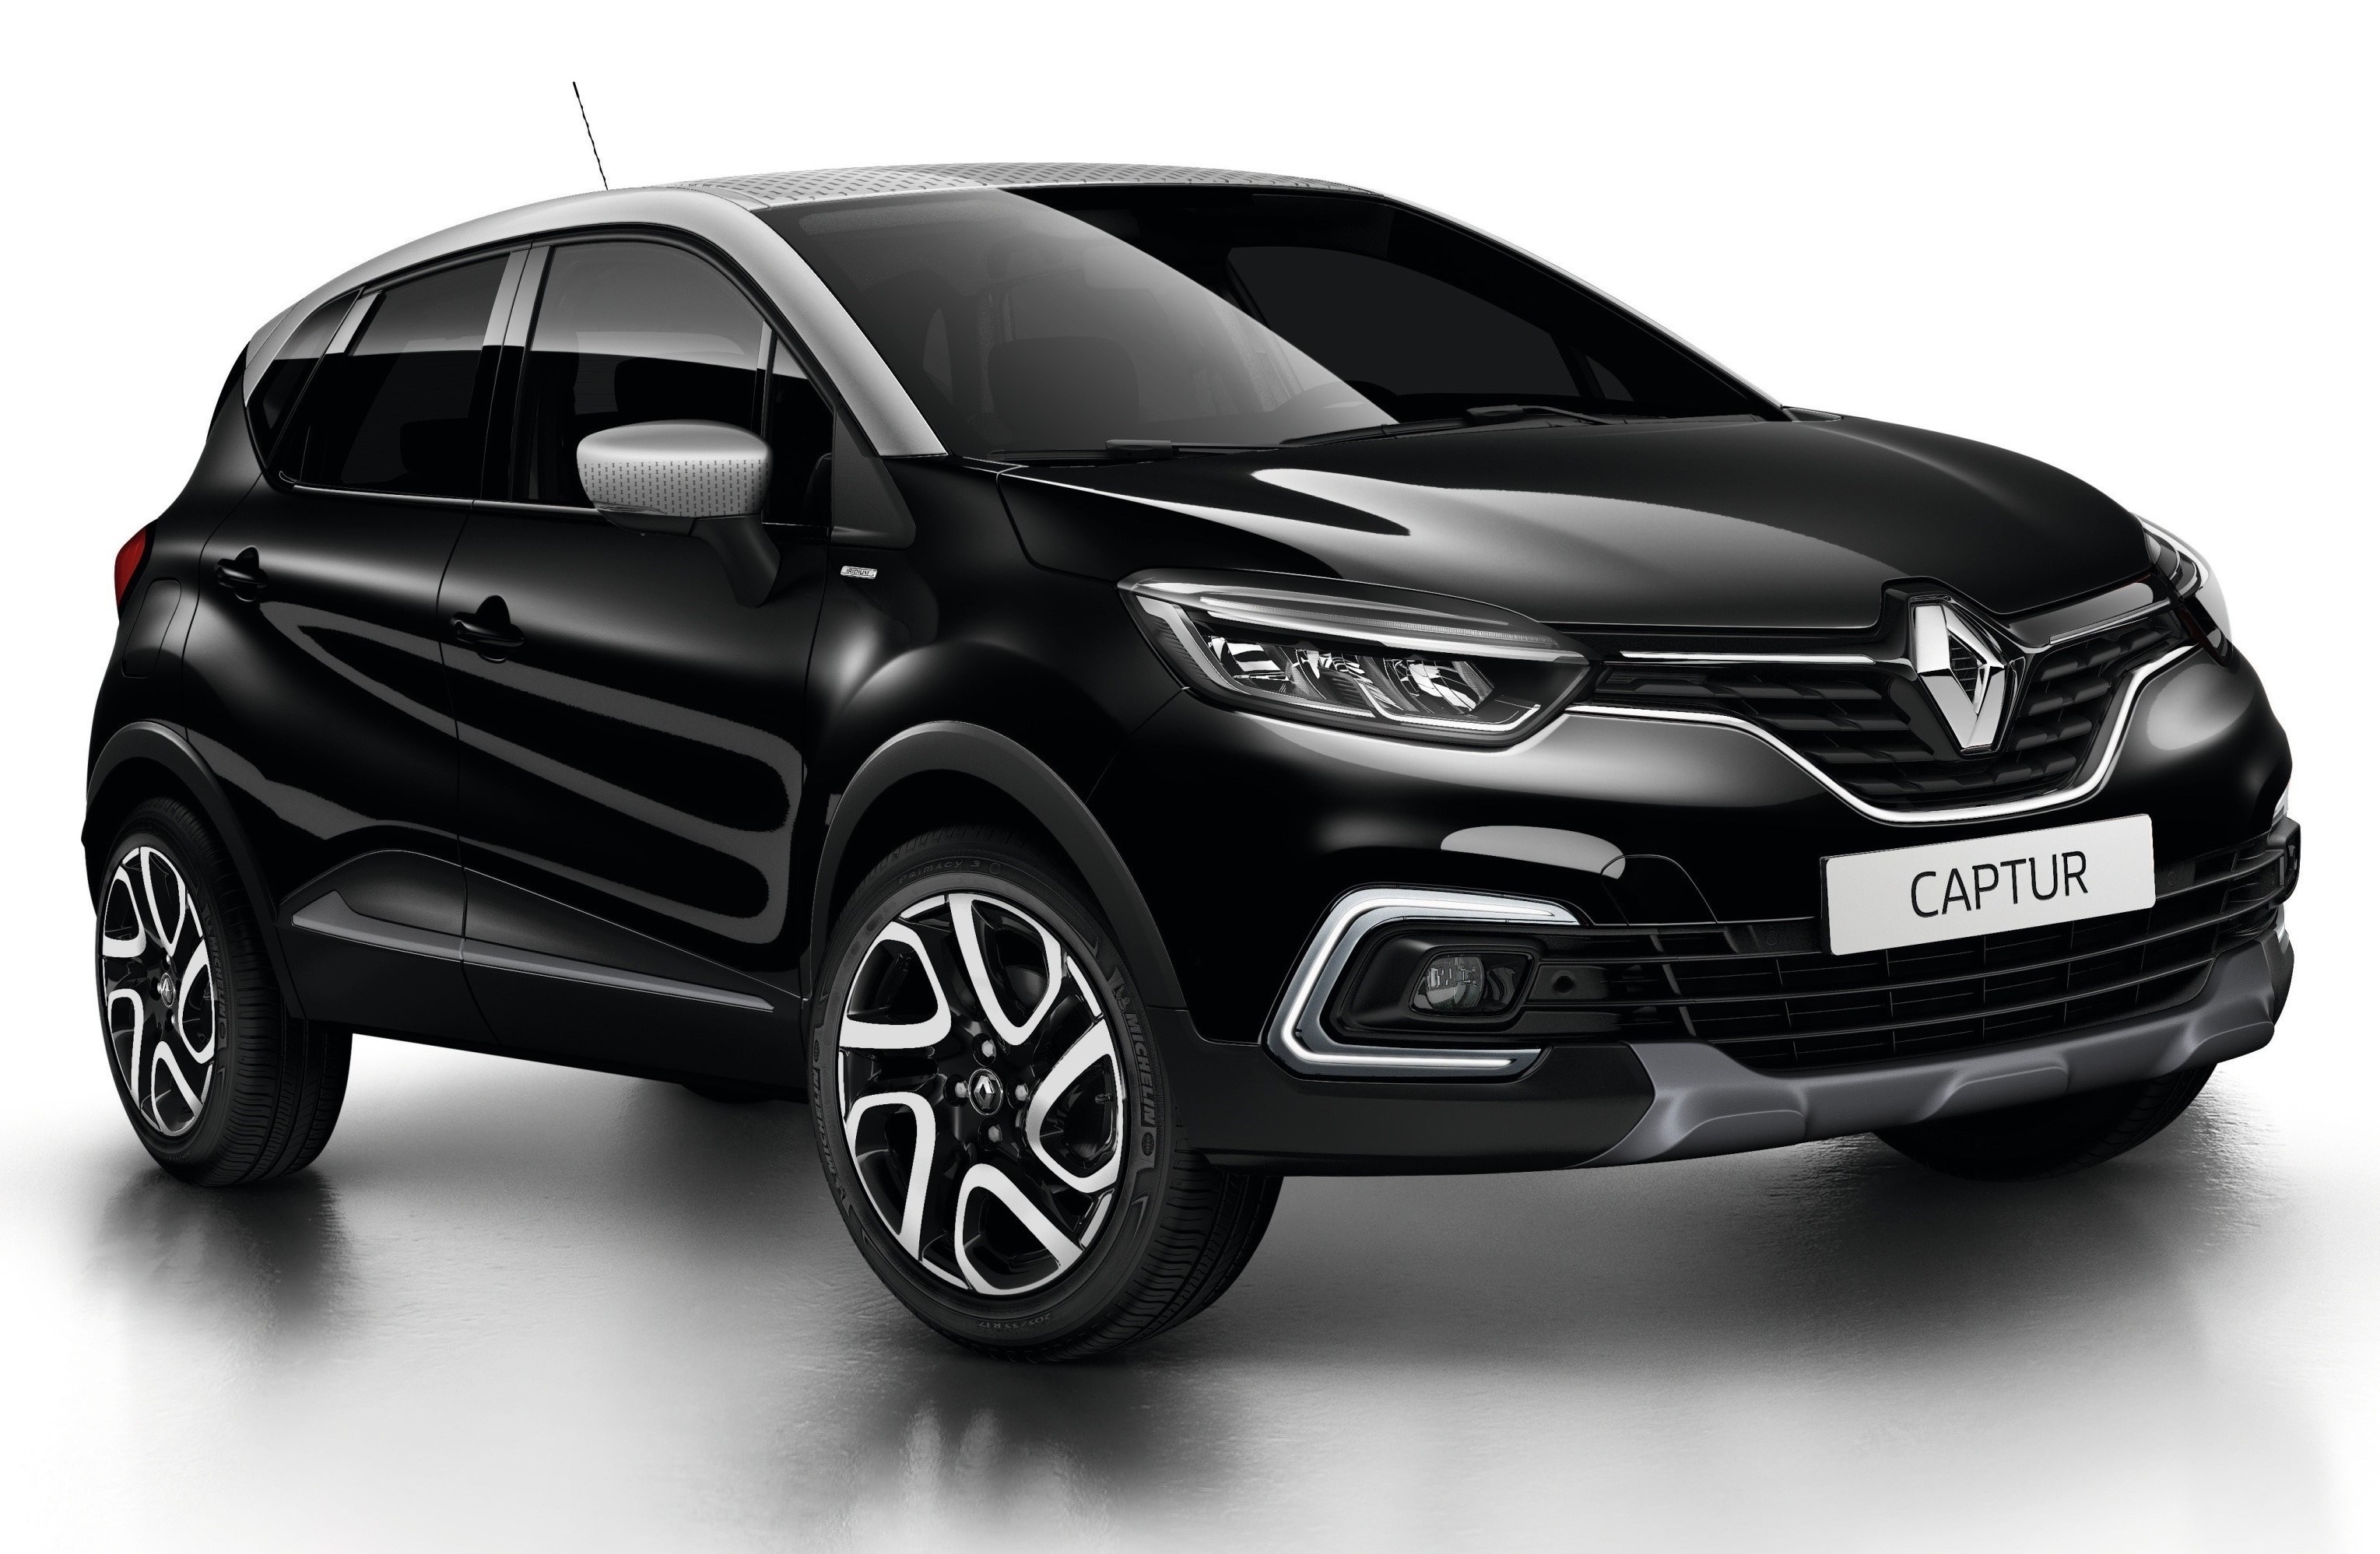 renault captur nouvelle s rie sp ciale iridium. Black Bedroom Furniture Sets. Home Design Ideas